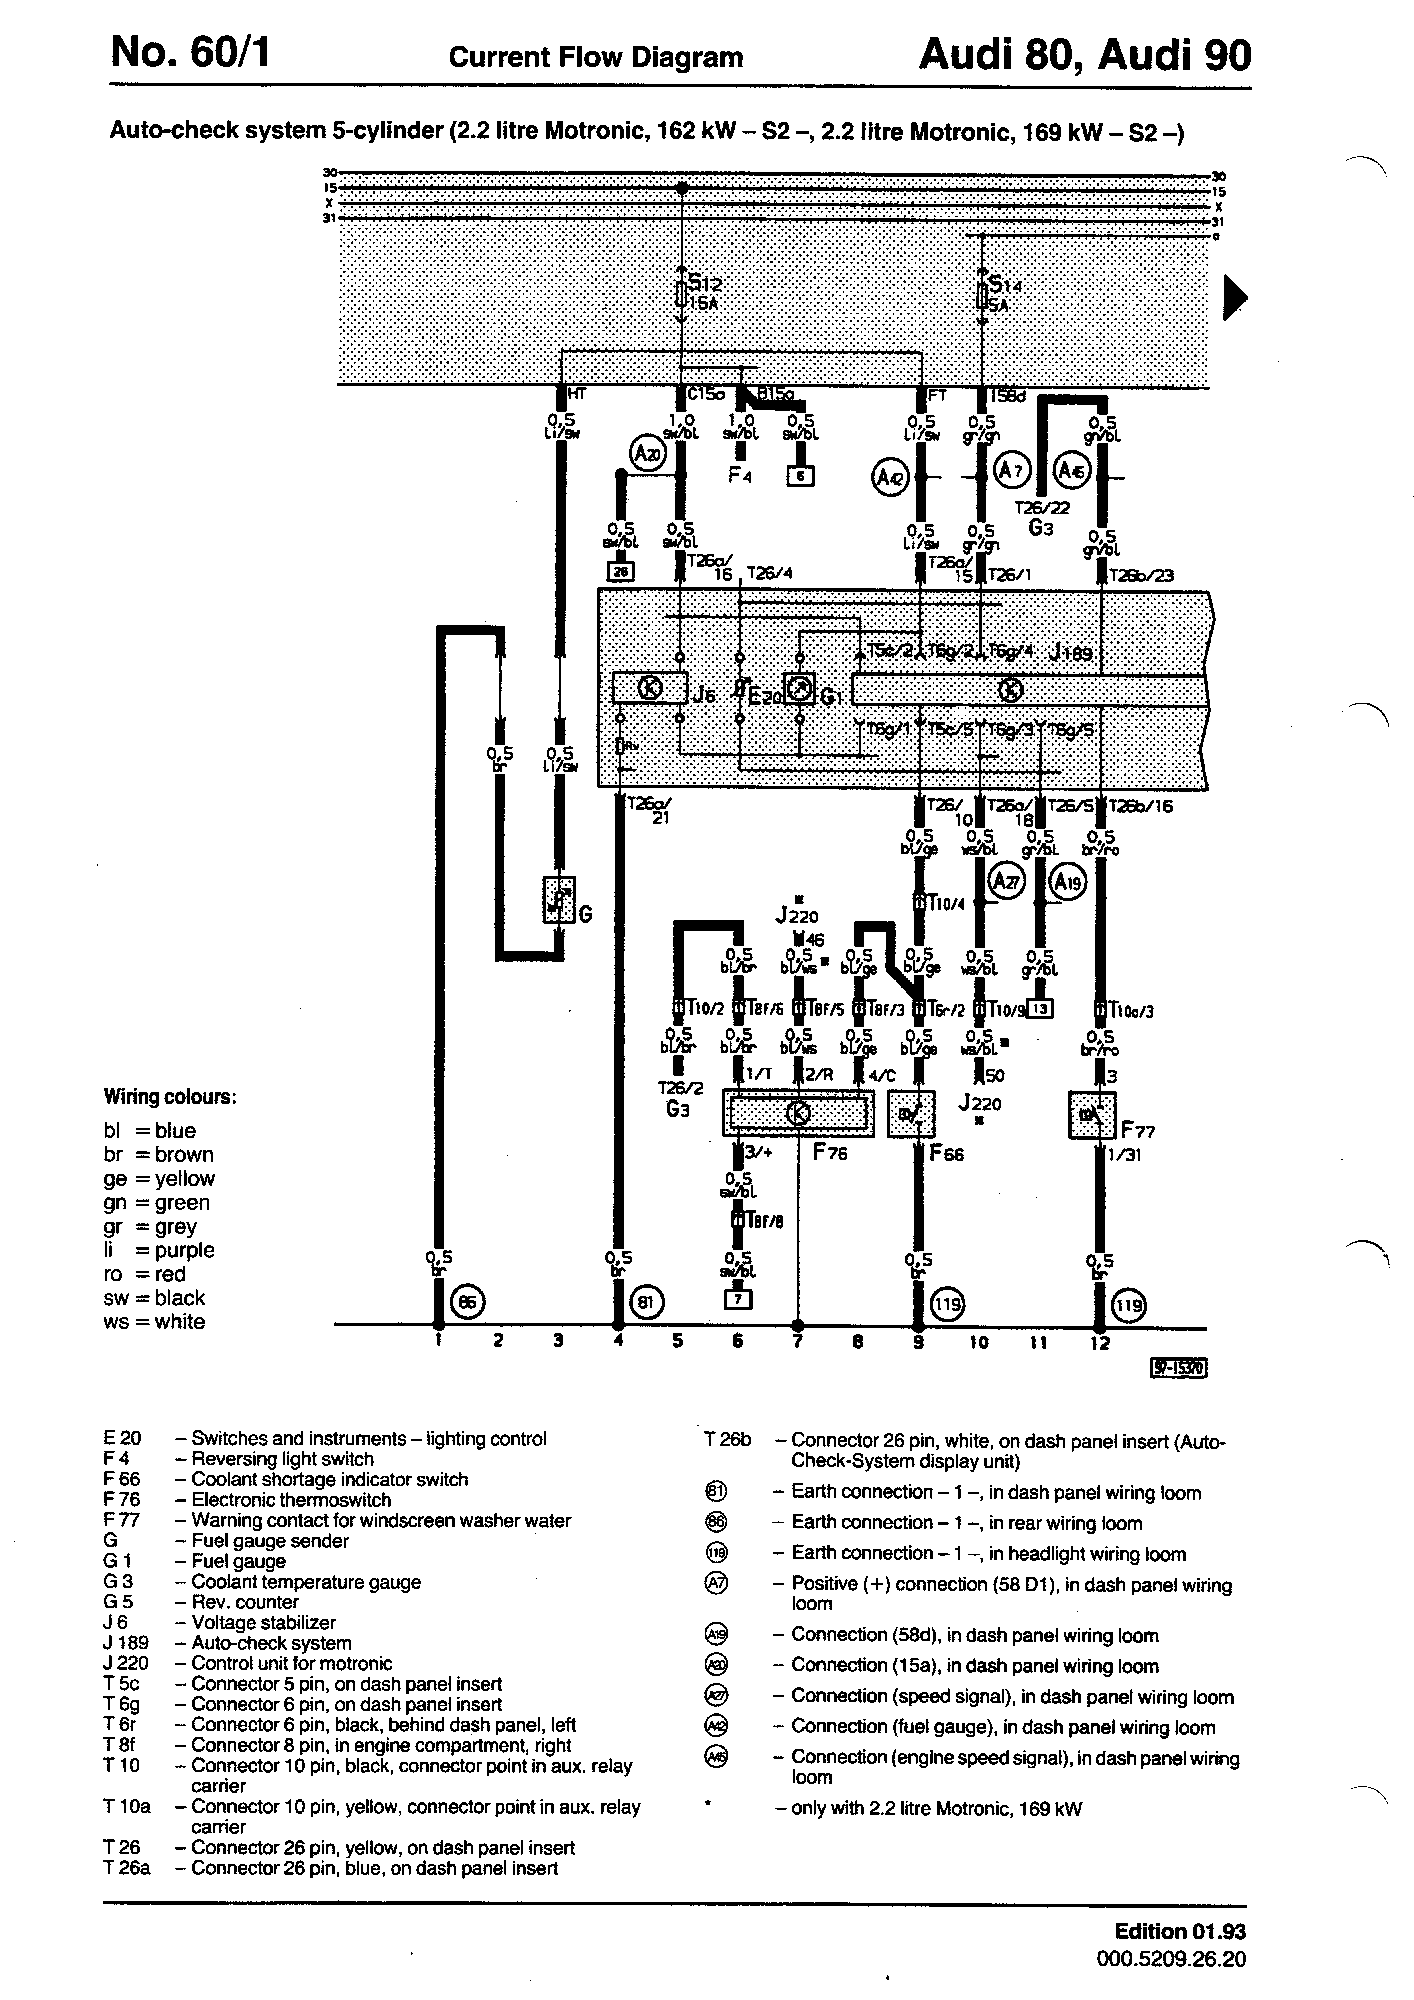 Audi S2 Wiring Diagram Automotive Q7 Diagrams Component Lookup 1997 A4 Combination Switch Engine